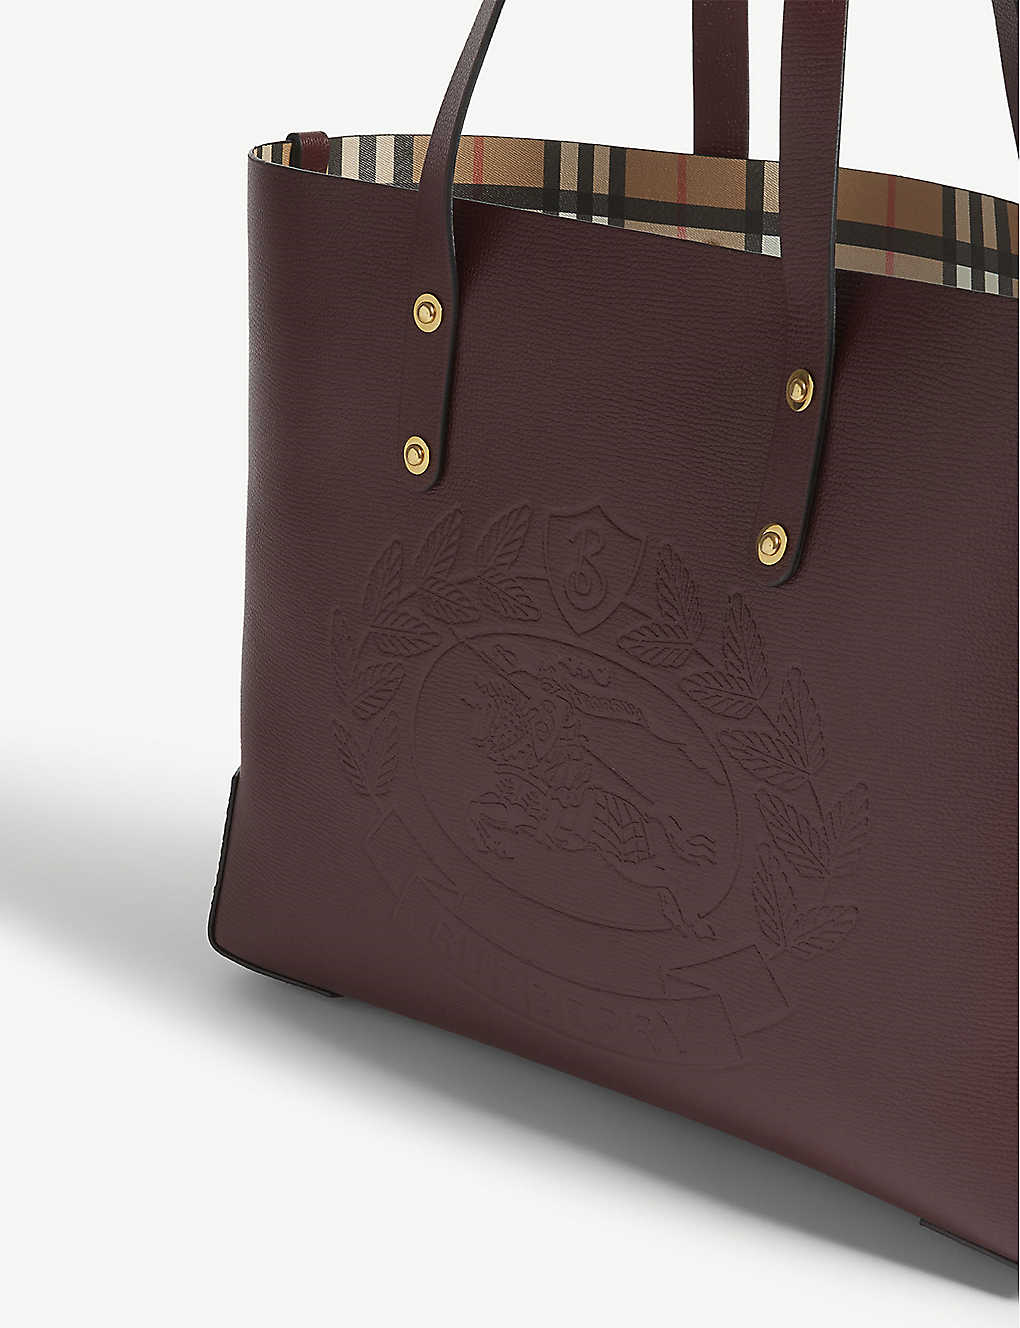 bbb79421cb80 Embossed crest leather tote  Embossed crest leather tote ...